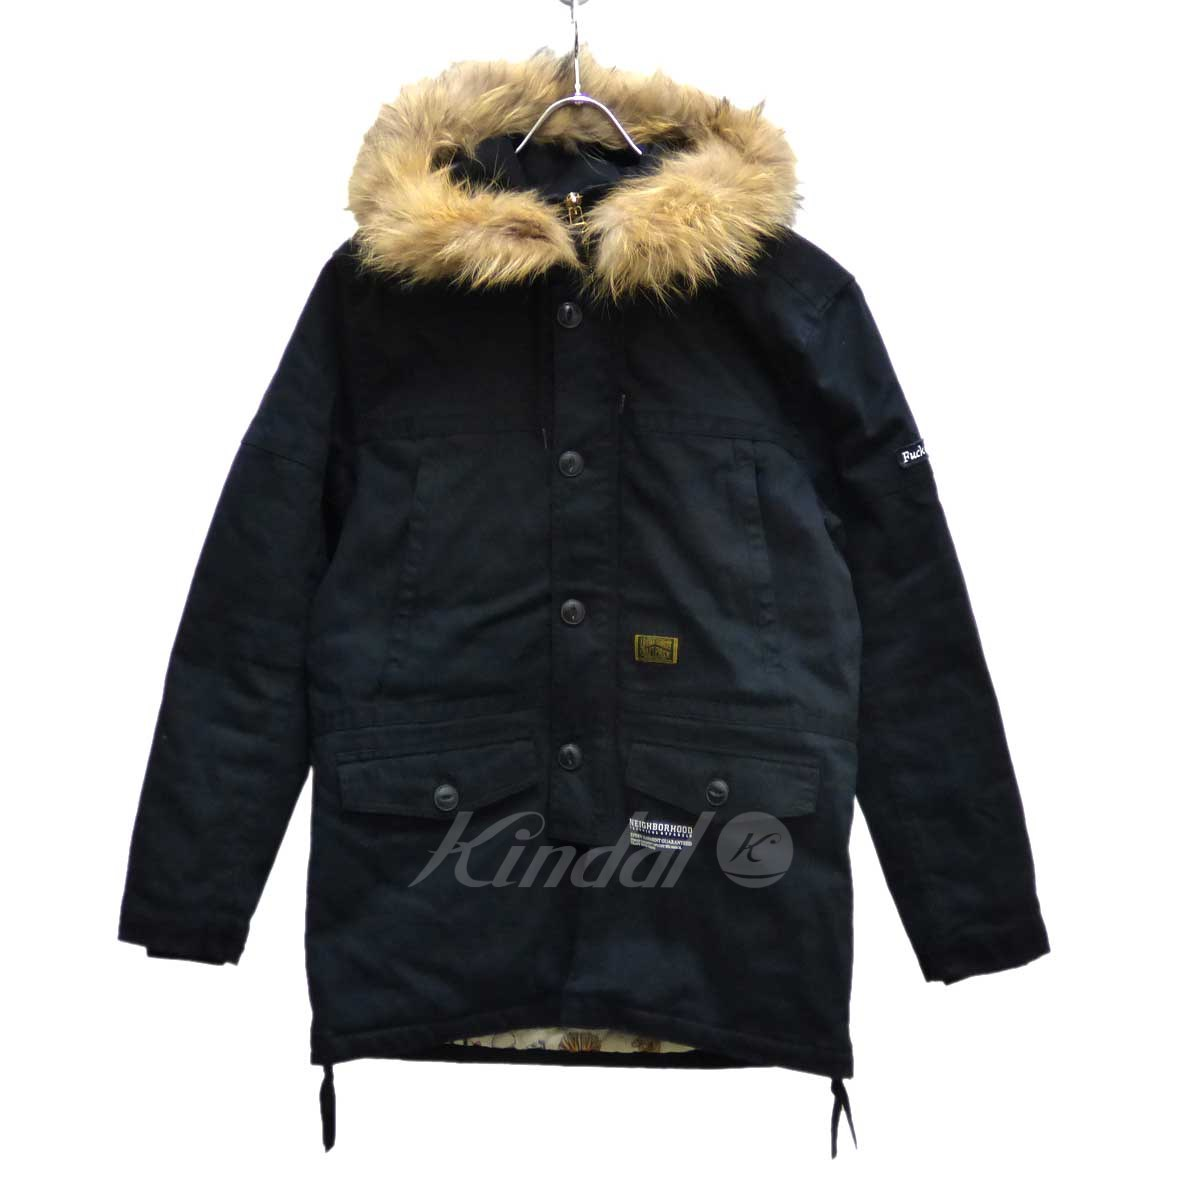 【中古】NEIGHBOR HOOD THUNDERSTRUCK C-JKT ジャケット 【送料無料】 【209286】 【KIND1641】